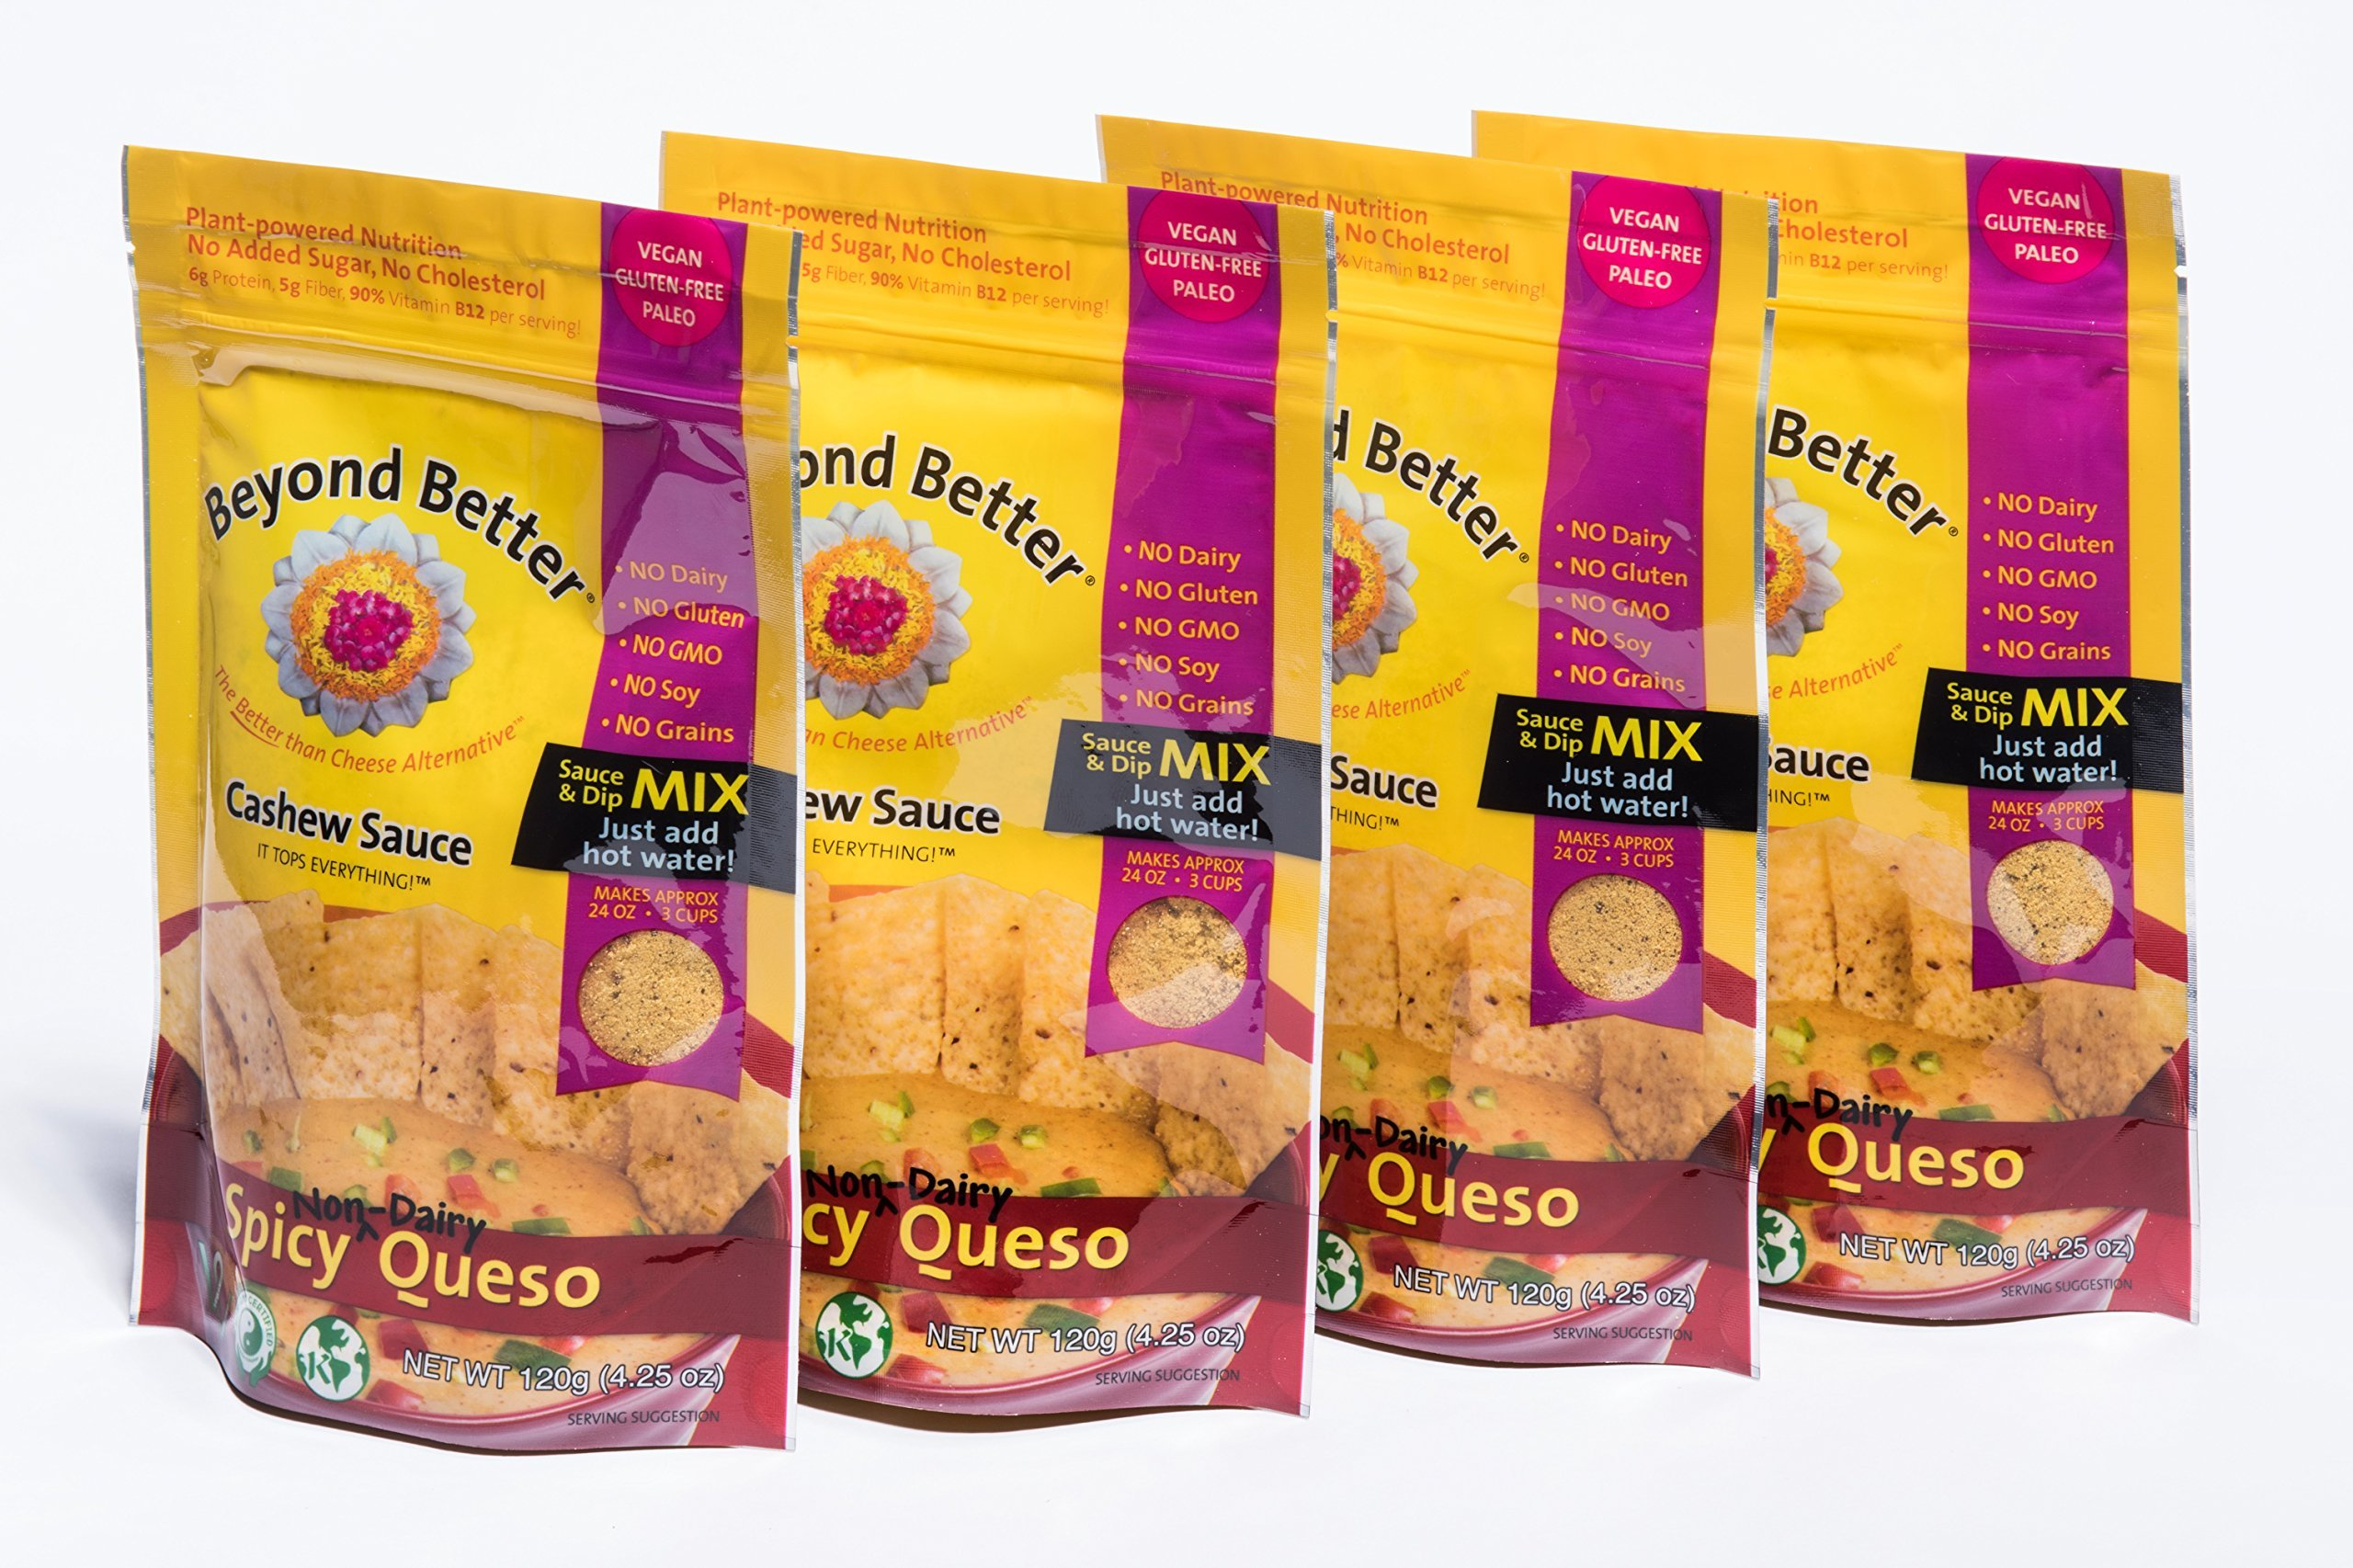 Beyond Better Cashew Spicy Queso Cheese Alternative (4 Pack) Gluten Free Soy Free Grain Free by Beyond Better